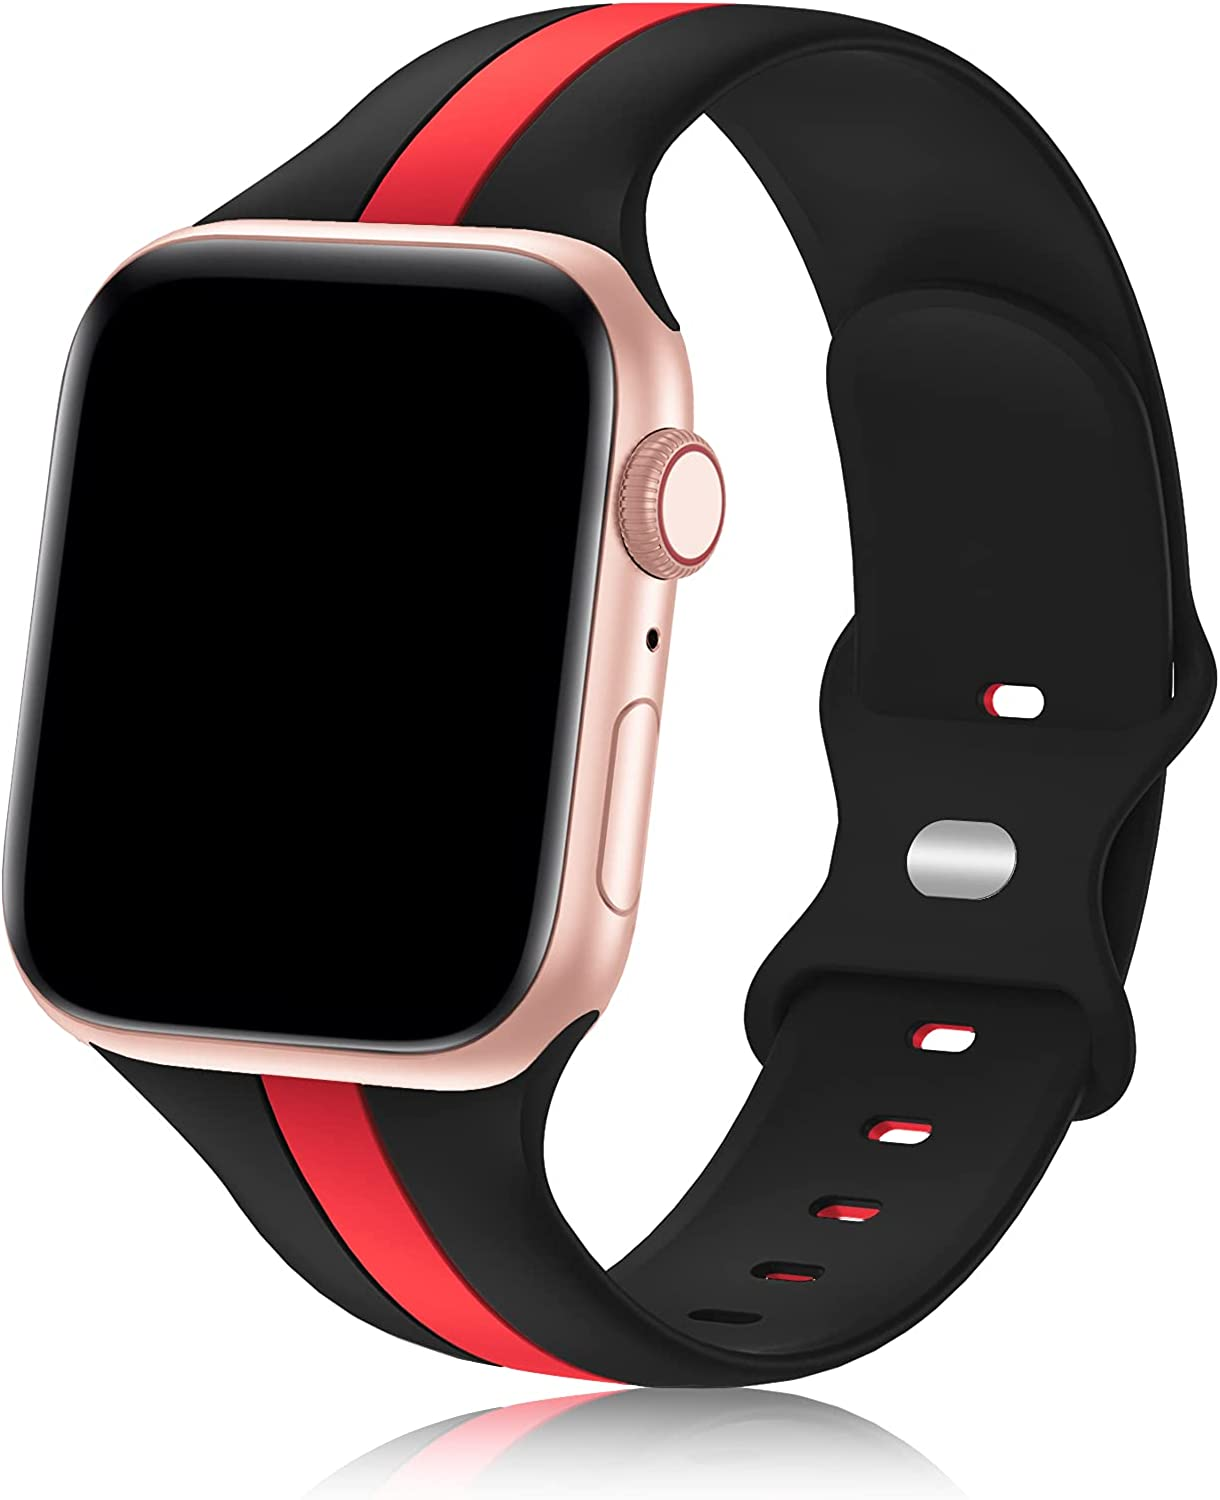 Designer Sport Band Compatible with Apple Watch iWatch Bands 38mm 40mm 41mm 42mm 44mm 45mm Men Women, Soft Silicone Strap Wristbands for Apple Watch Series7/6/5/4/3/2/1/SE